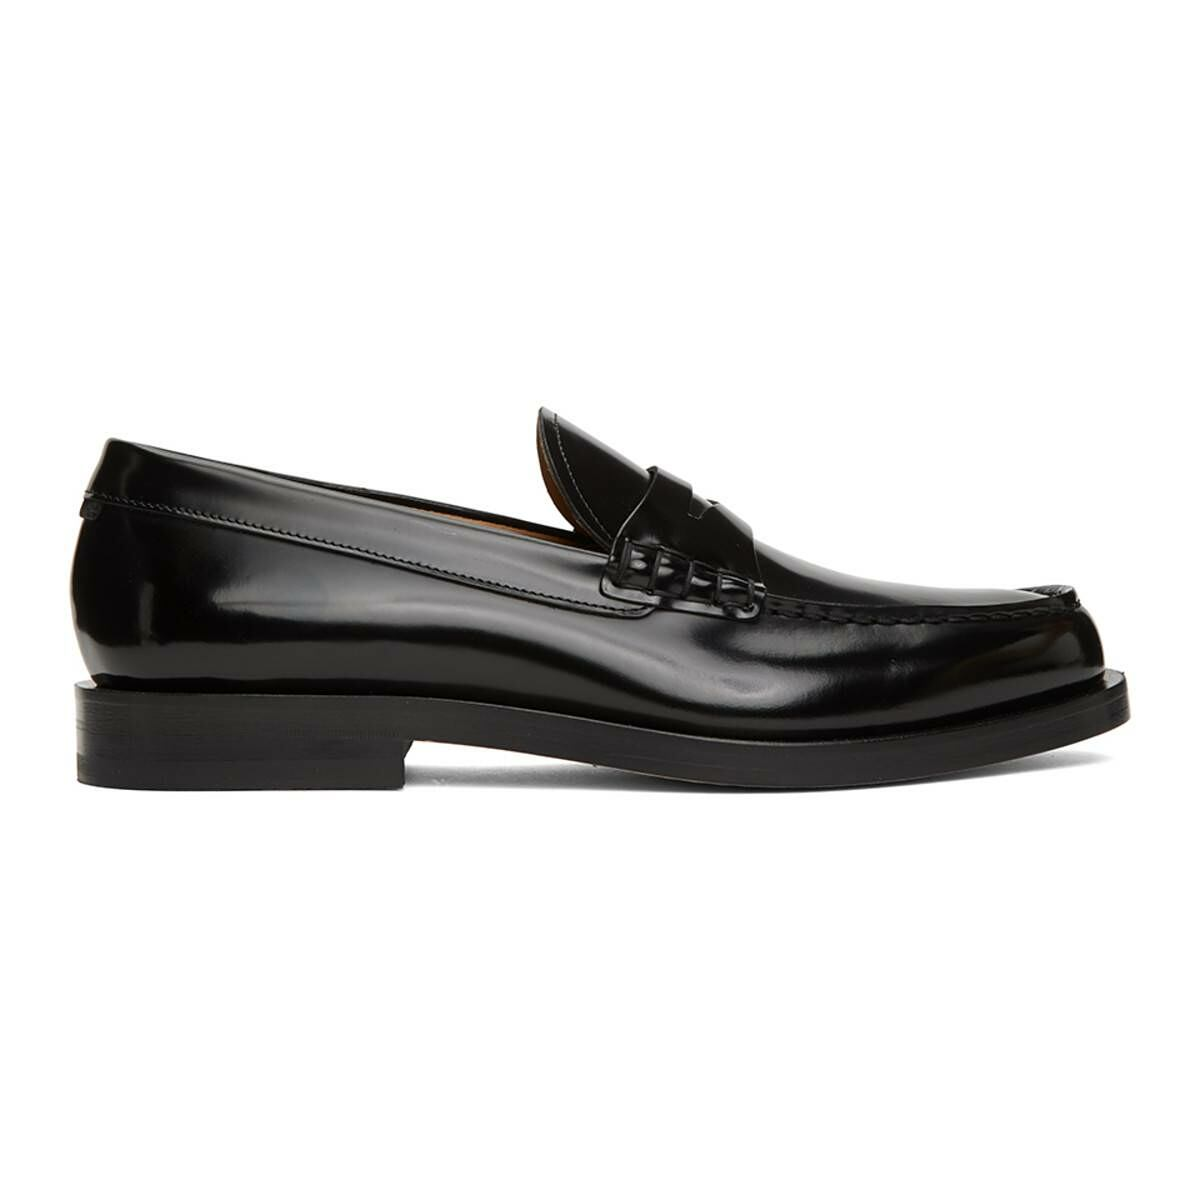 Boss Black Patent Leather Loafers Ssense USA MEN Men SHOES Mens LOAFERS